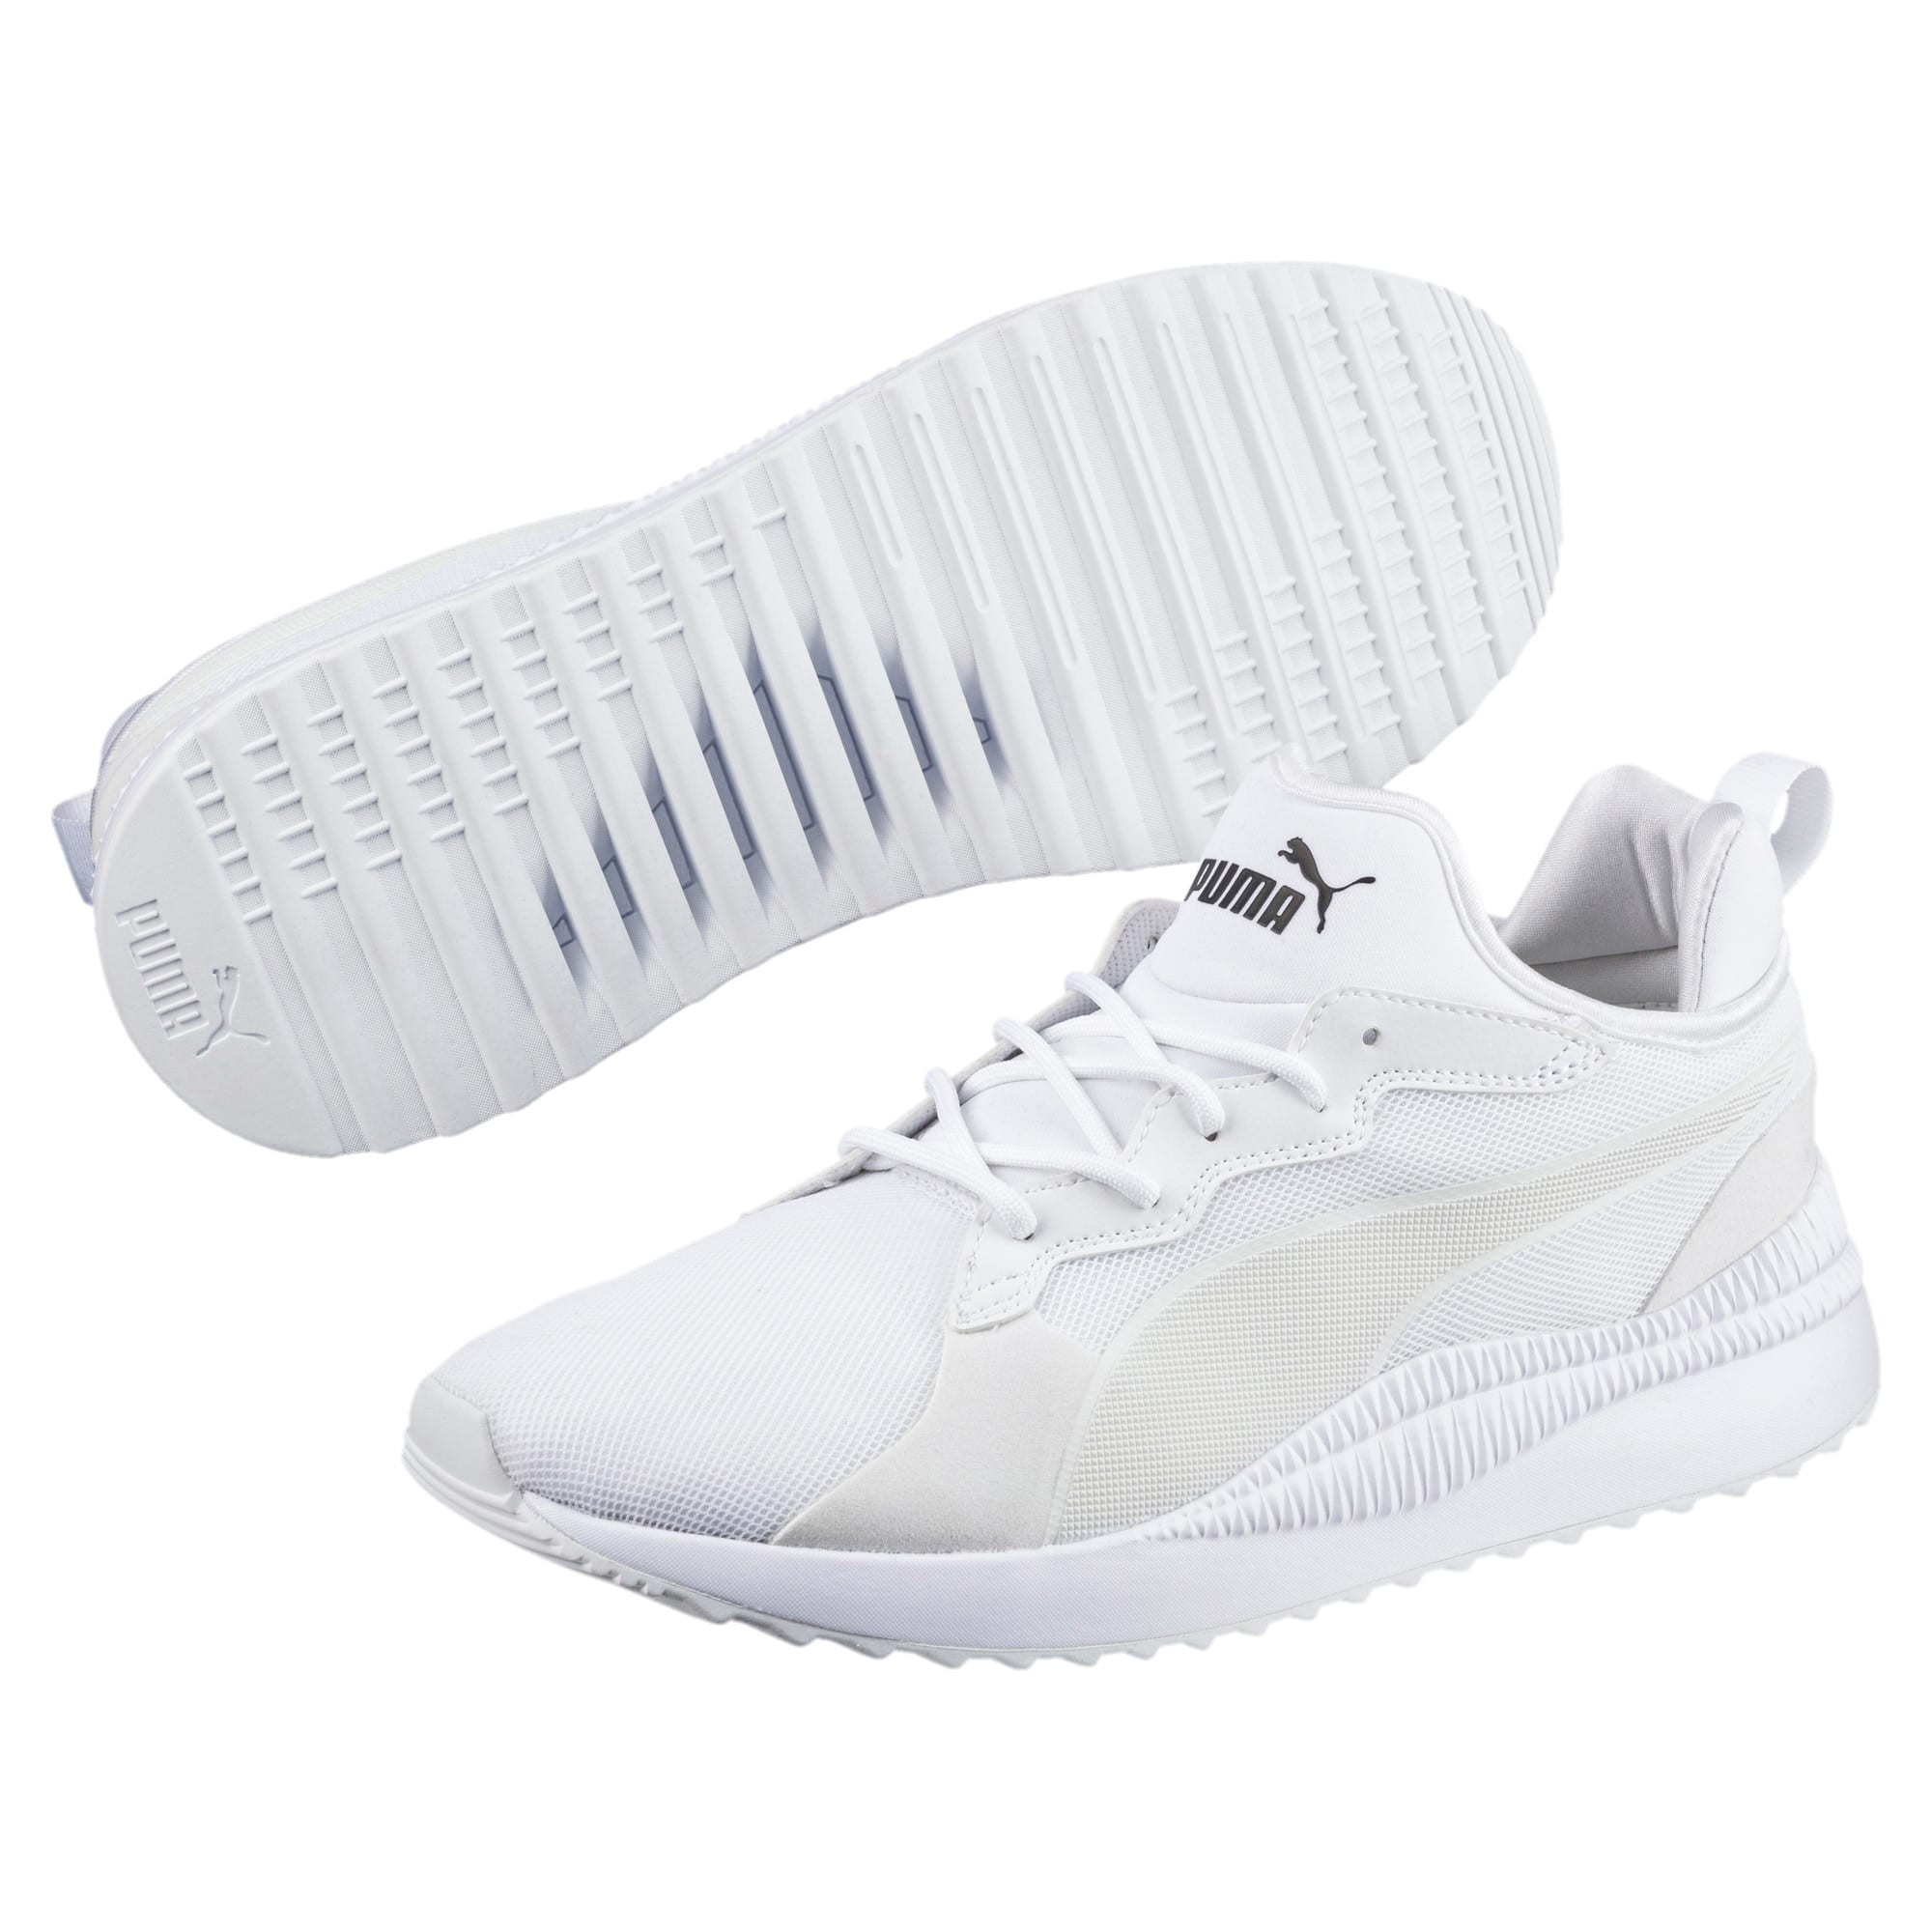 Thumbnail 6 of Pacer Next Trainers, Puma White-Puma White, medium-IND